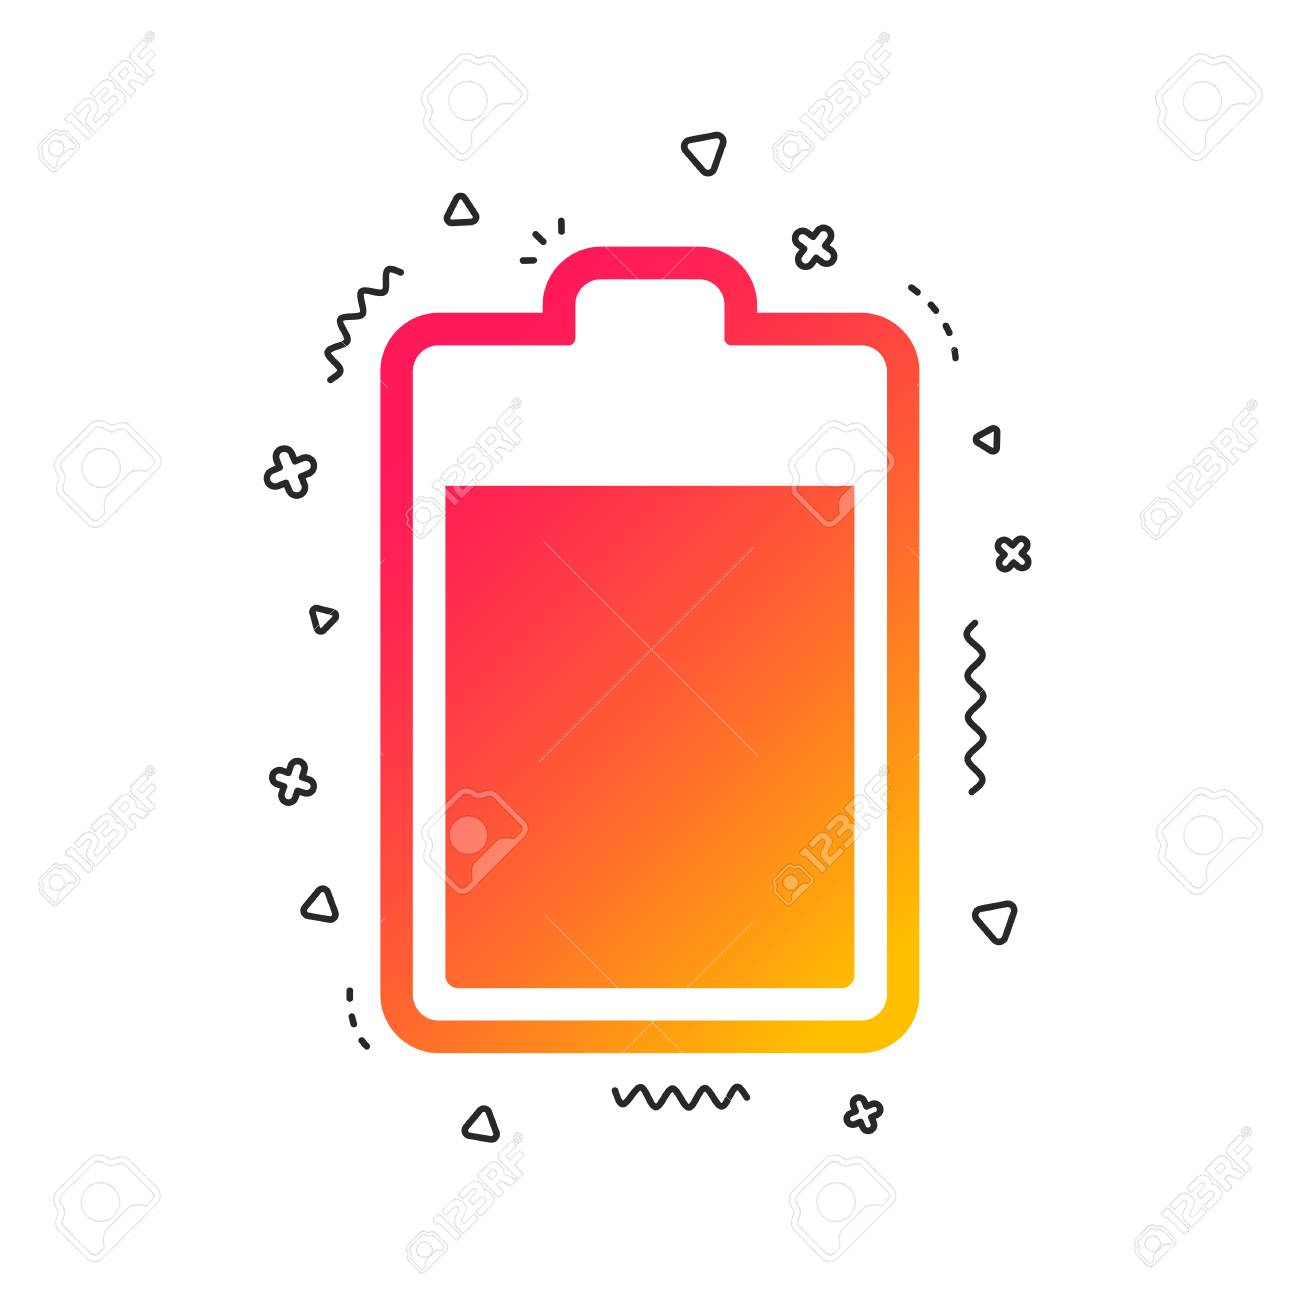 Battery level sign icon. Electricity symbol. Colorful geometric shapes. Gradient battery icon design. Vector - 112670155